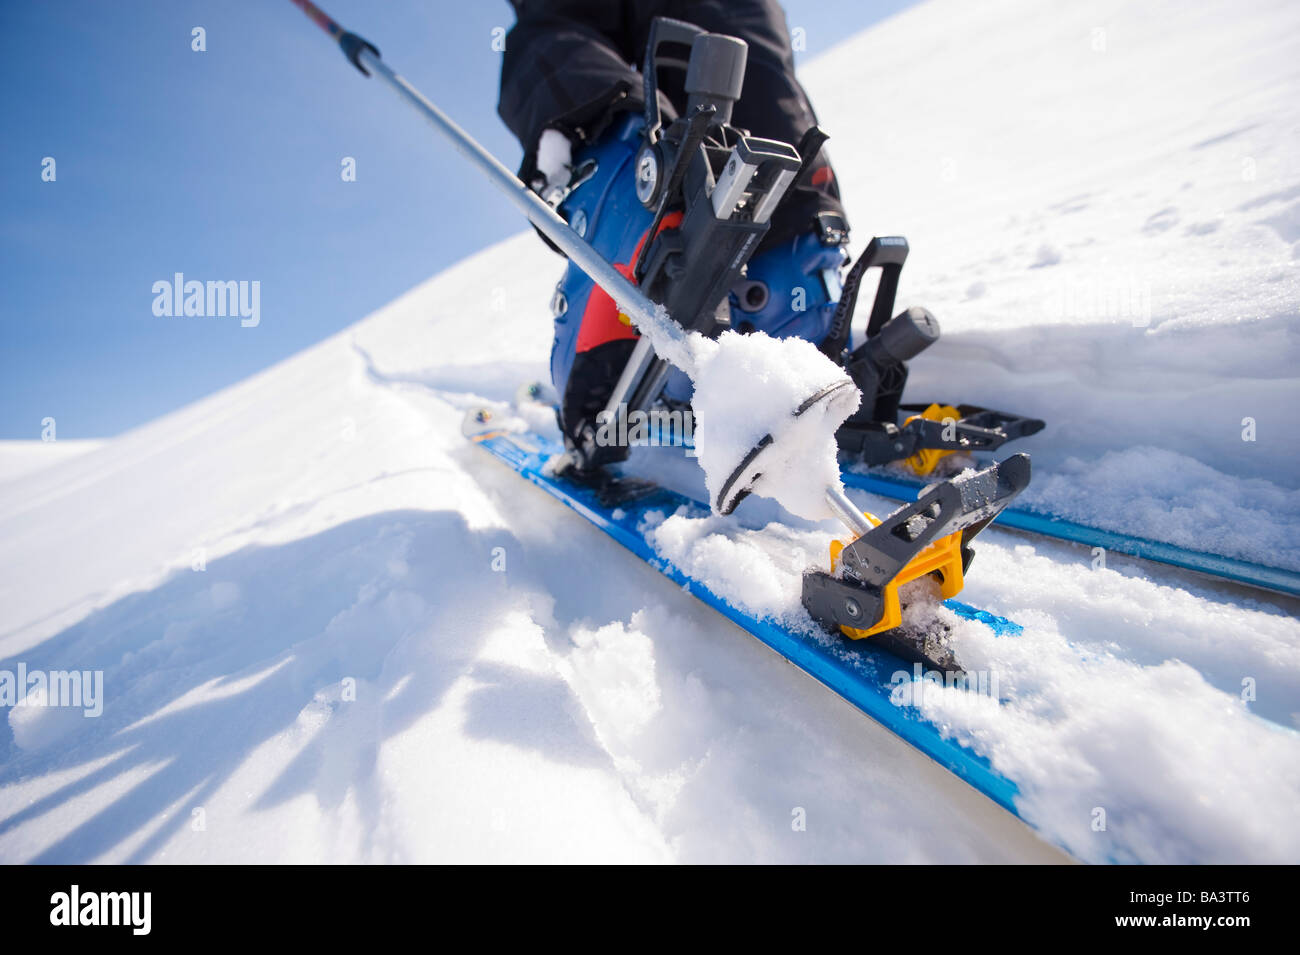 Close up of a backcountry ski and boot in motion on a trek in Alaska during Winter - Stock Image